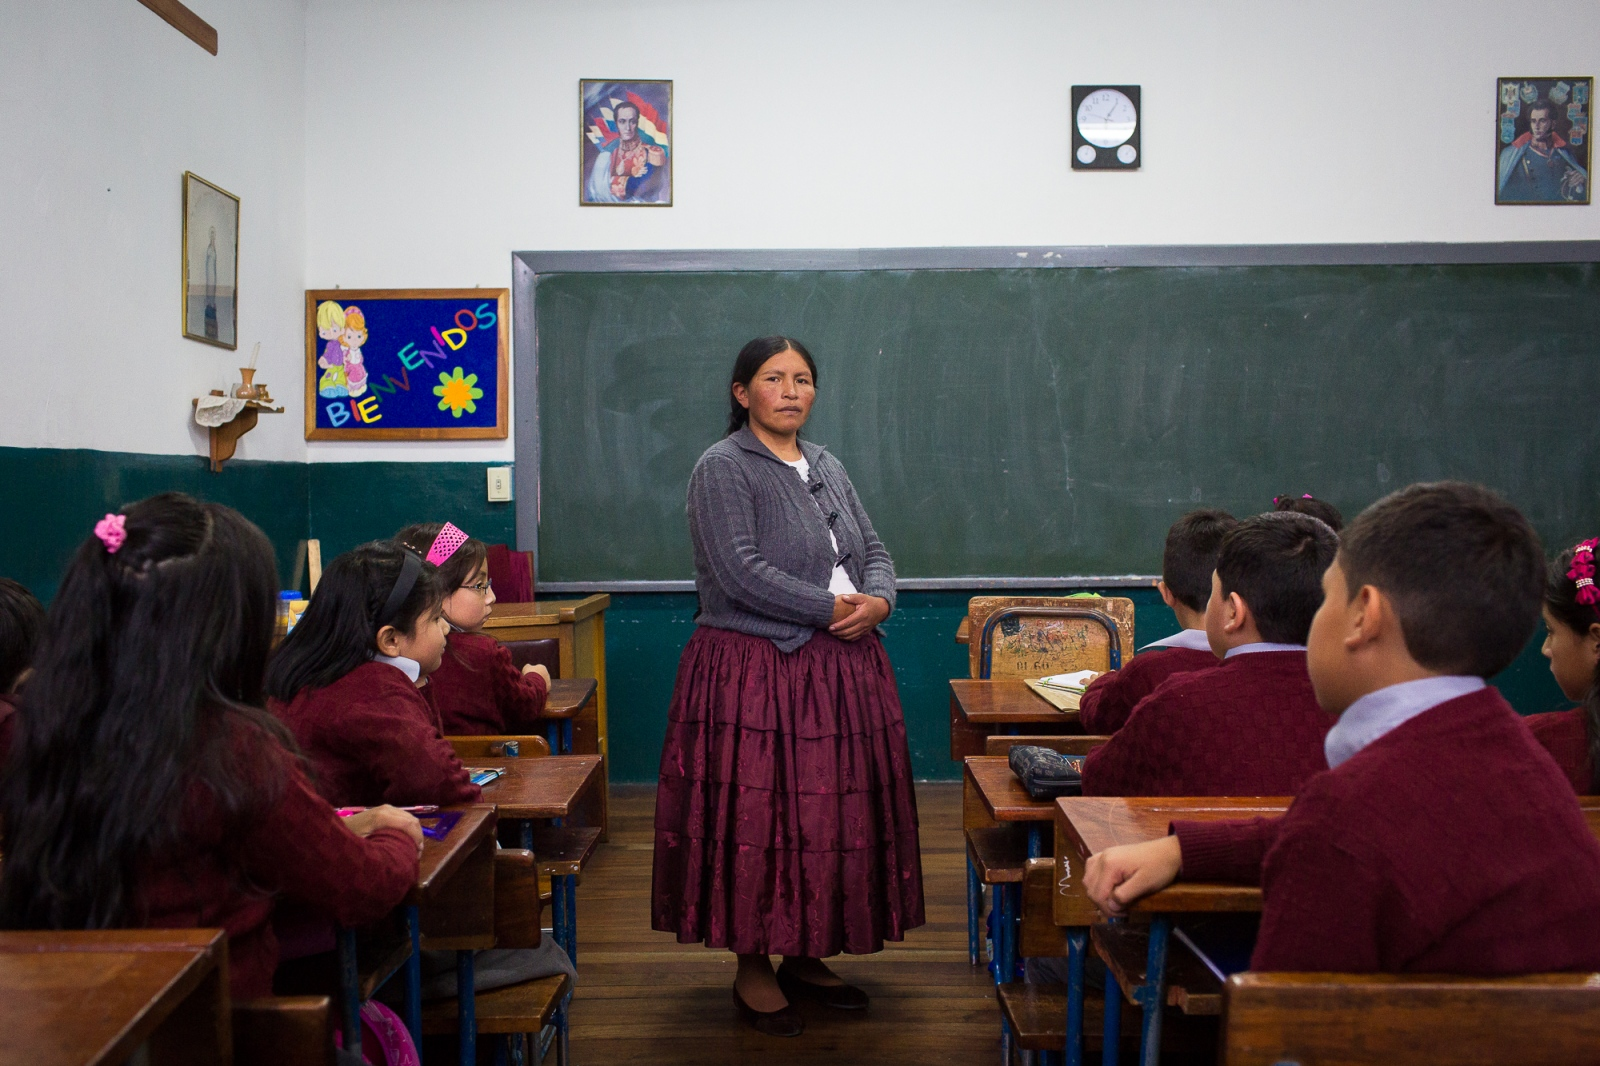 "Celia Laura in her classroom at San Calixto Private School, La Paz. Since 2013, students in Bolivia have had to learn Spanish, English, and one of the native languages—such as Aymara or Quechua. Professor Laura, who teaches Aymara, was the first indigenous woman in the country to become a teacher in a private school. There was once a time when ""cholitas"" were not allowed to study in schools unless they swapped their traditional clothing for Westernized garb."